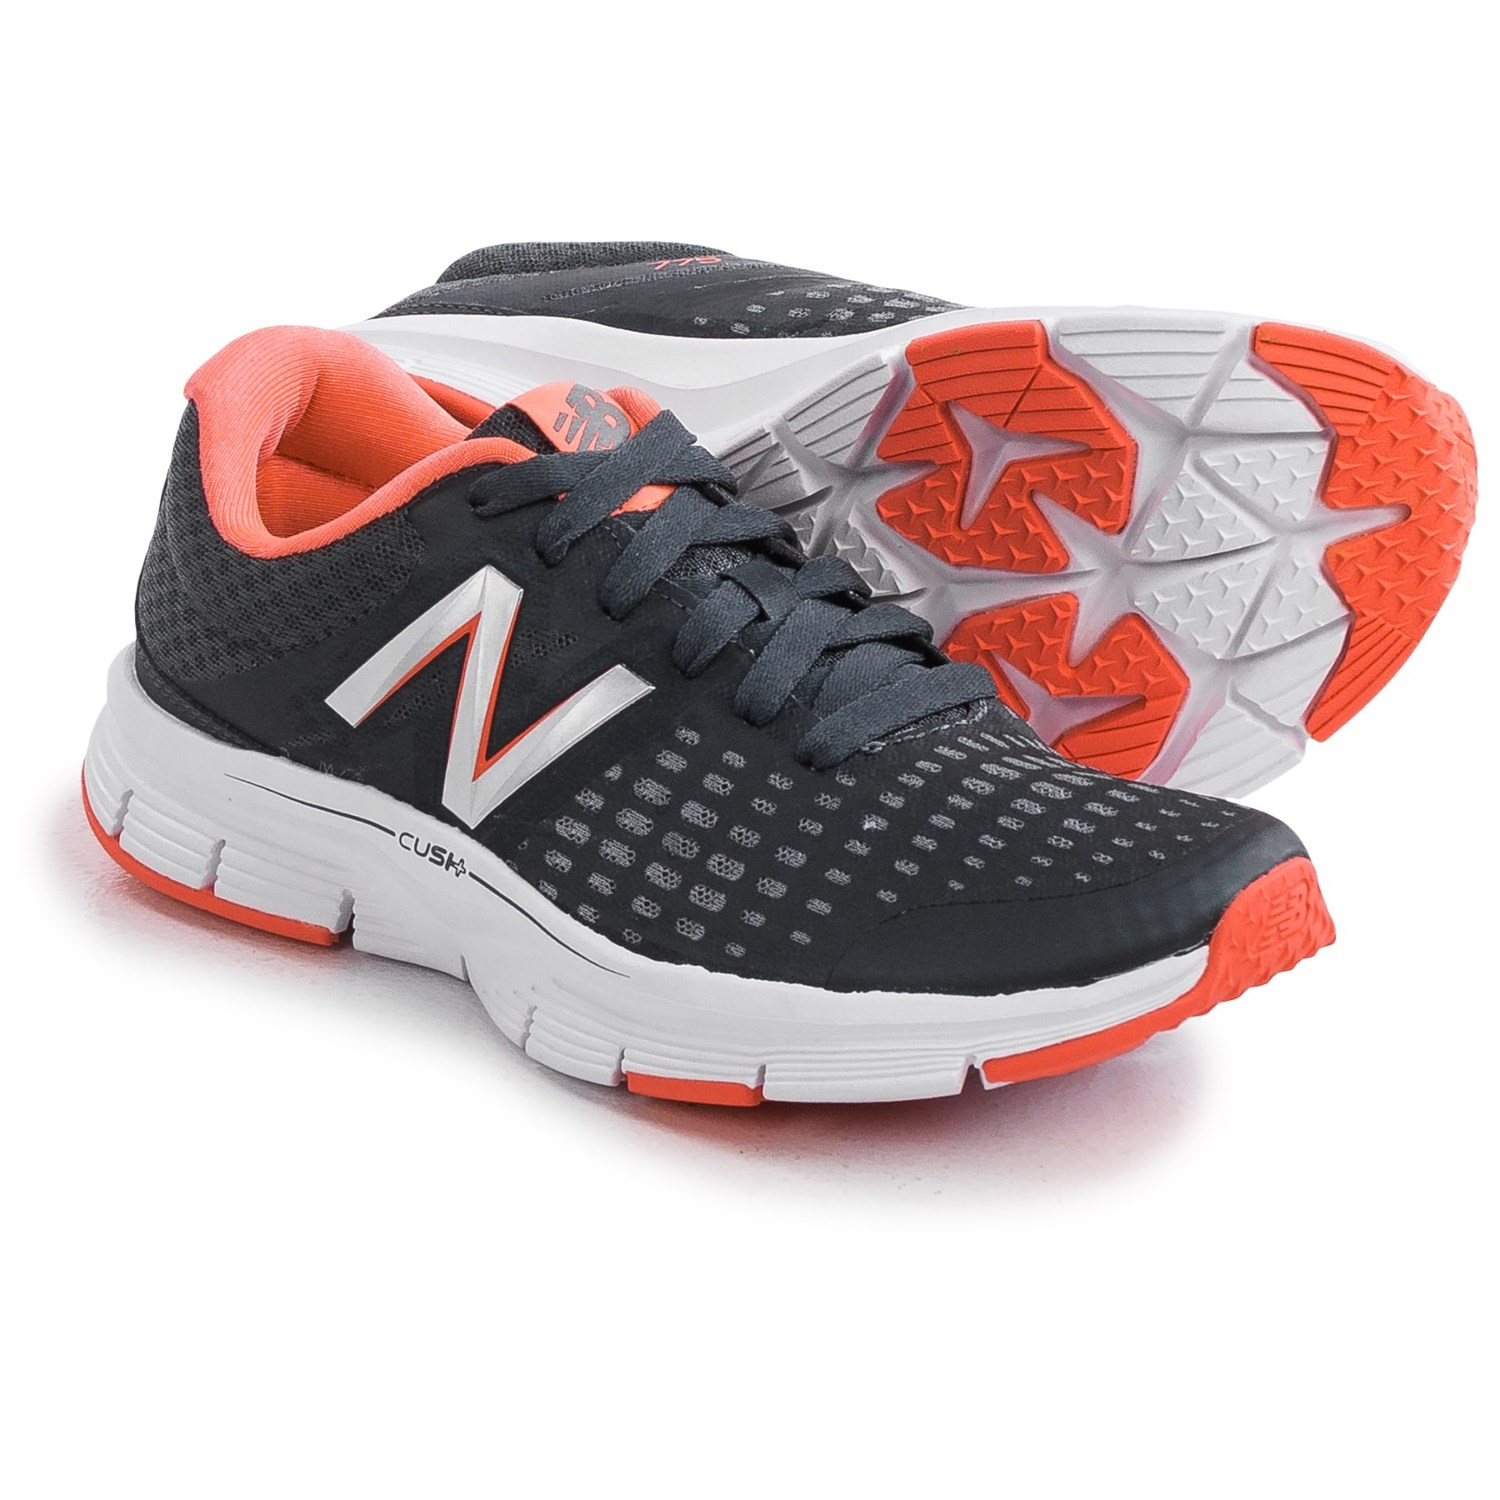 new balance shoe store - 28 images - new balance m860v6 ...